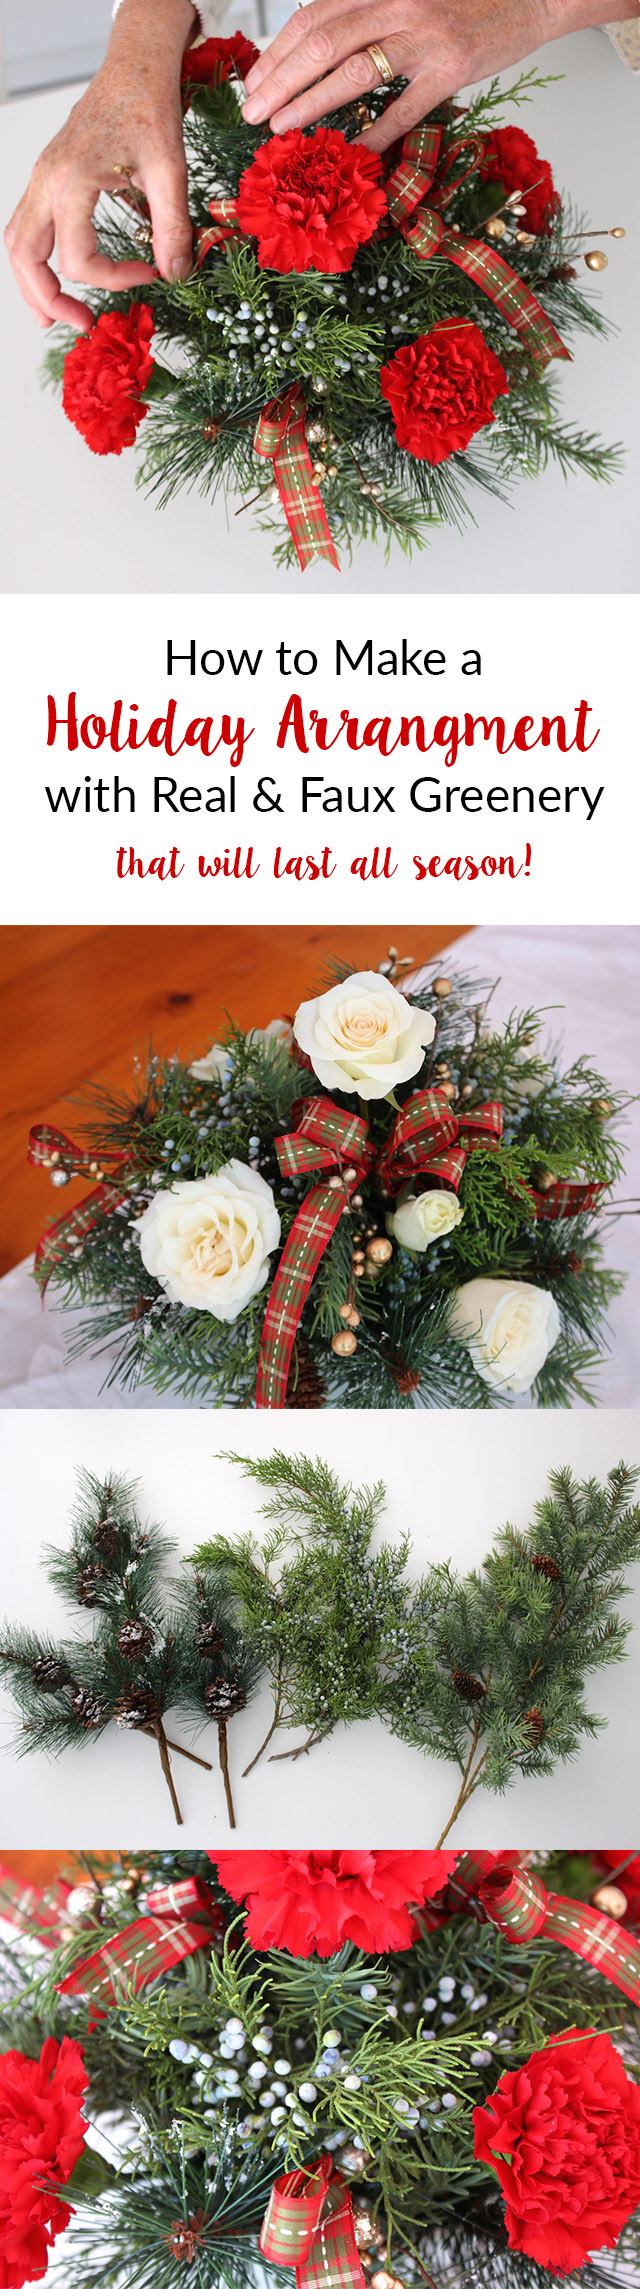 holiday-arrangement-how-to-greenery-flowers